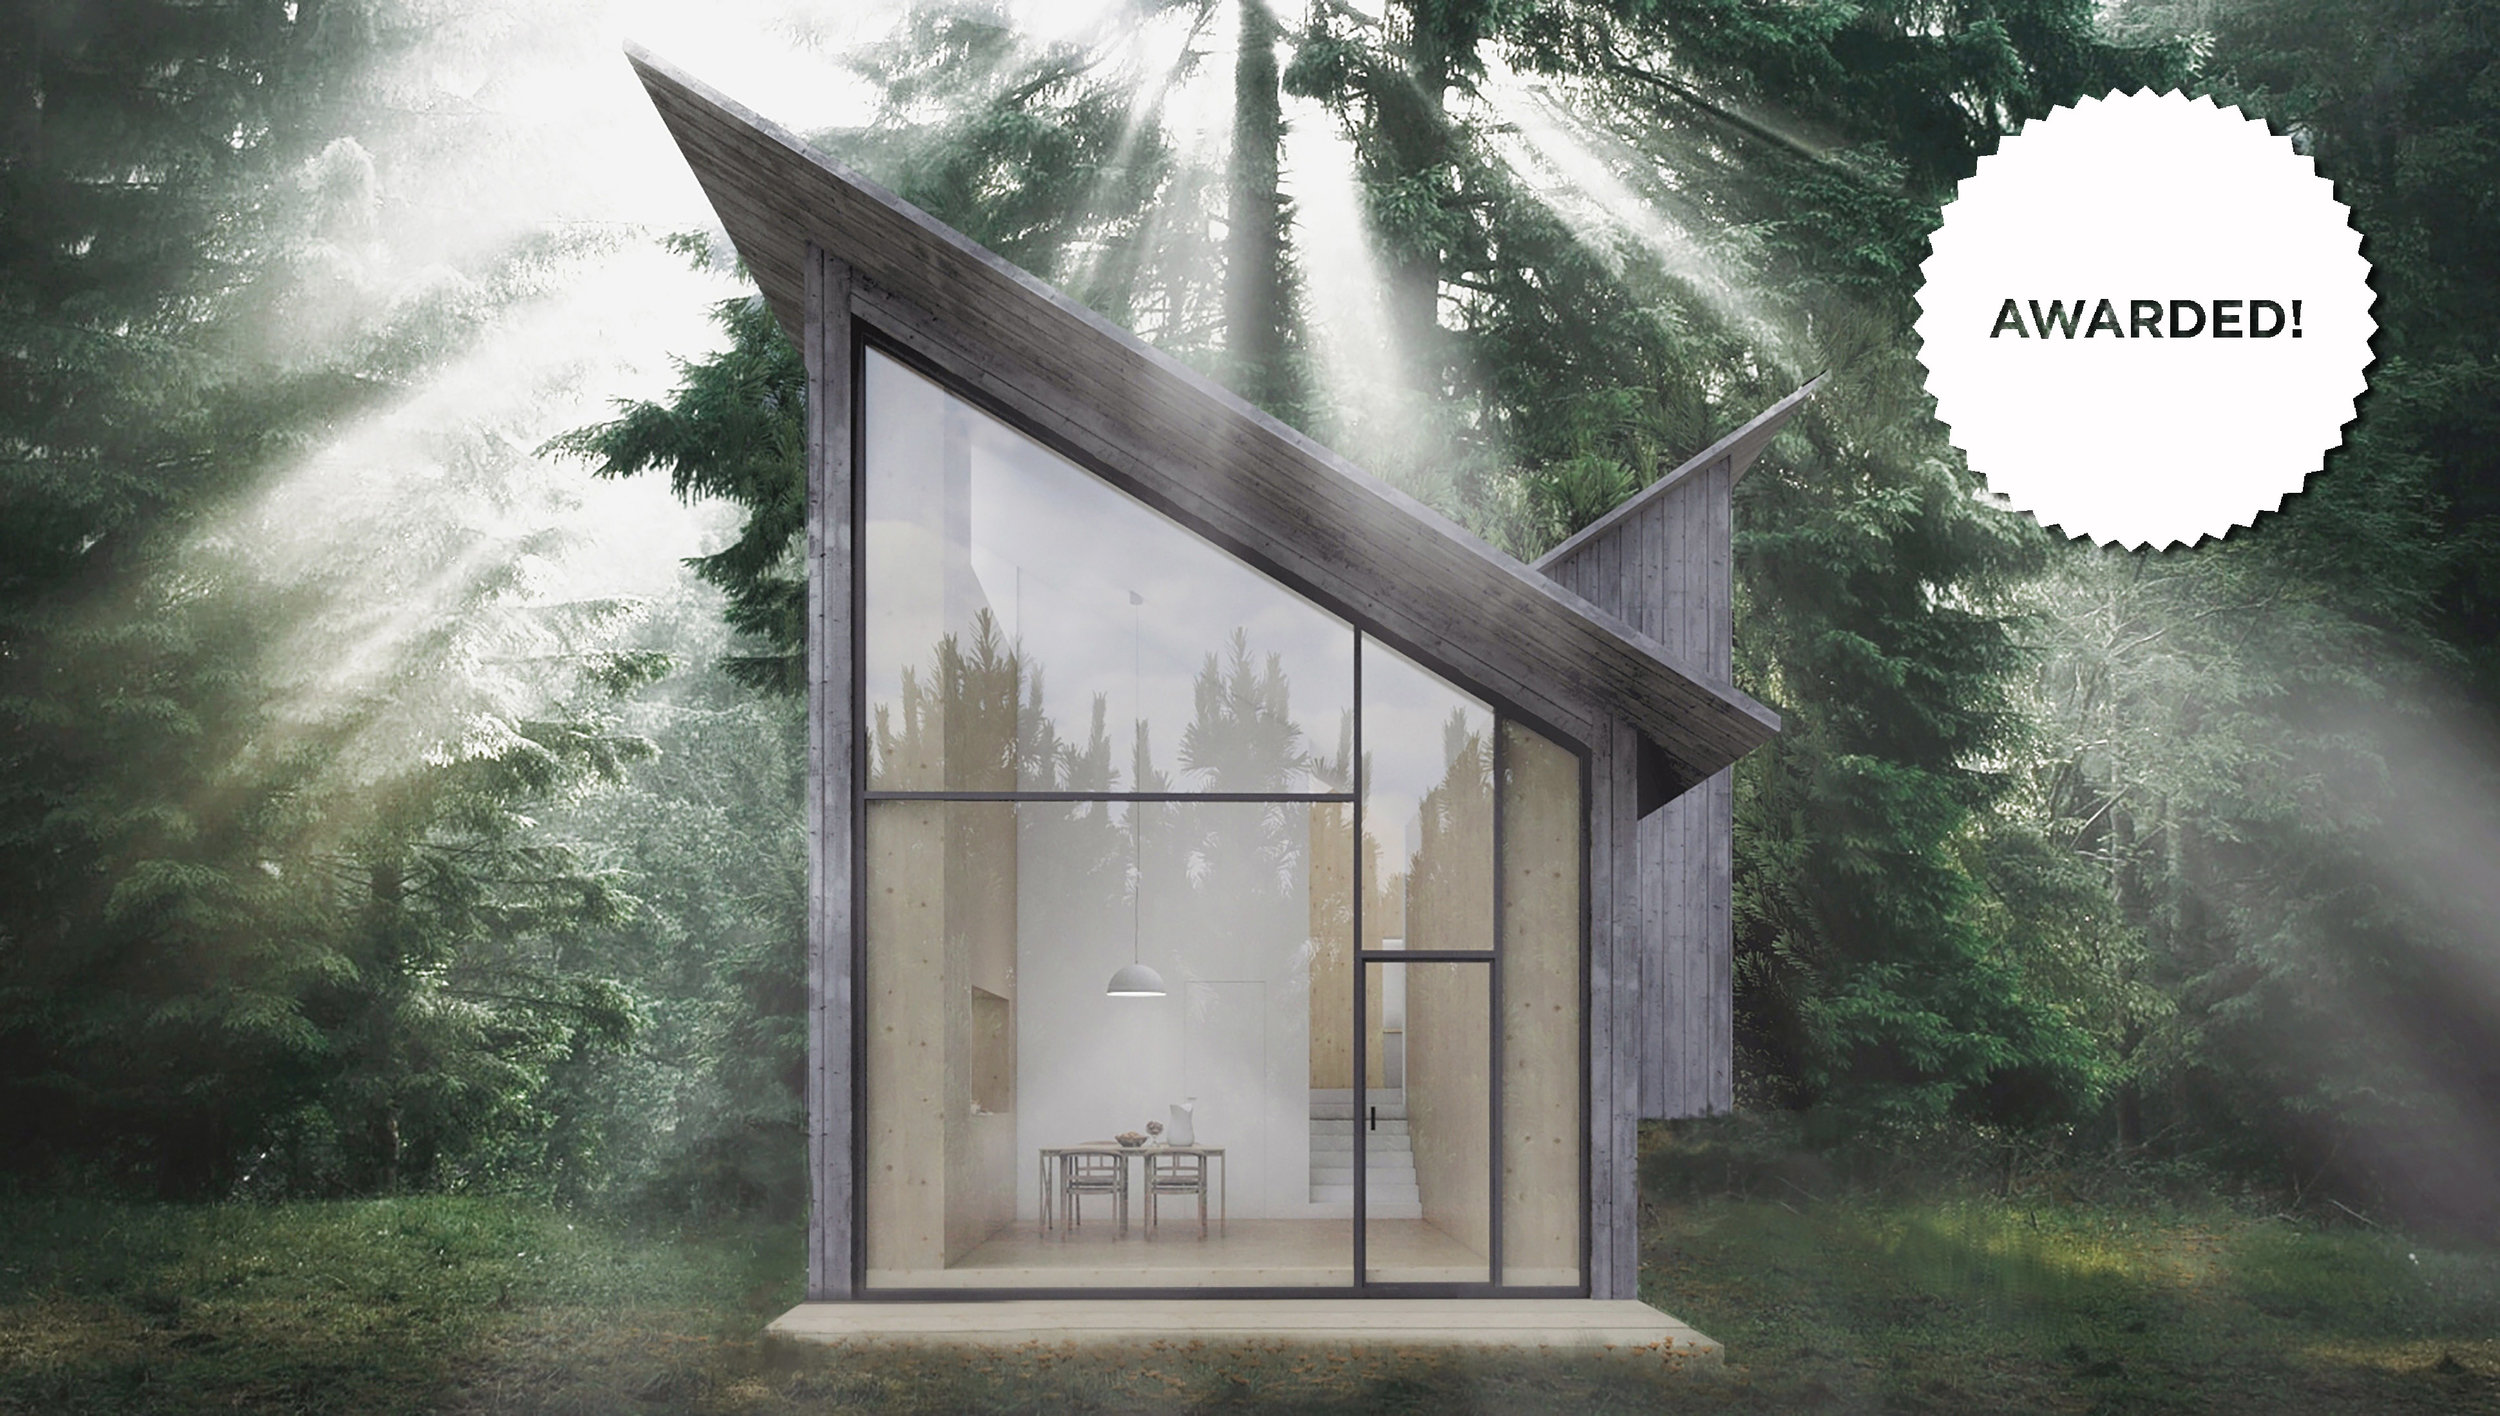 Micro House - future house design competition2017